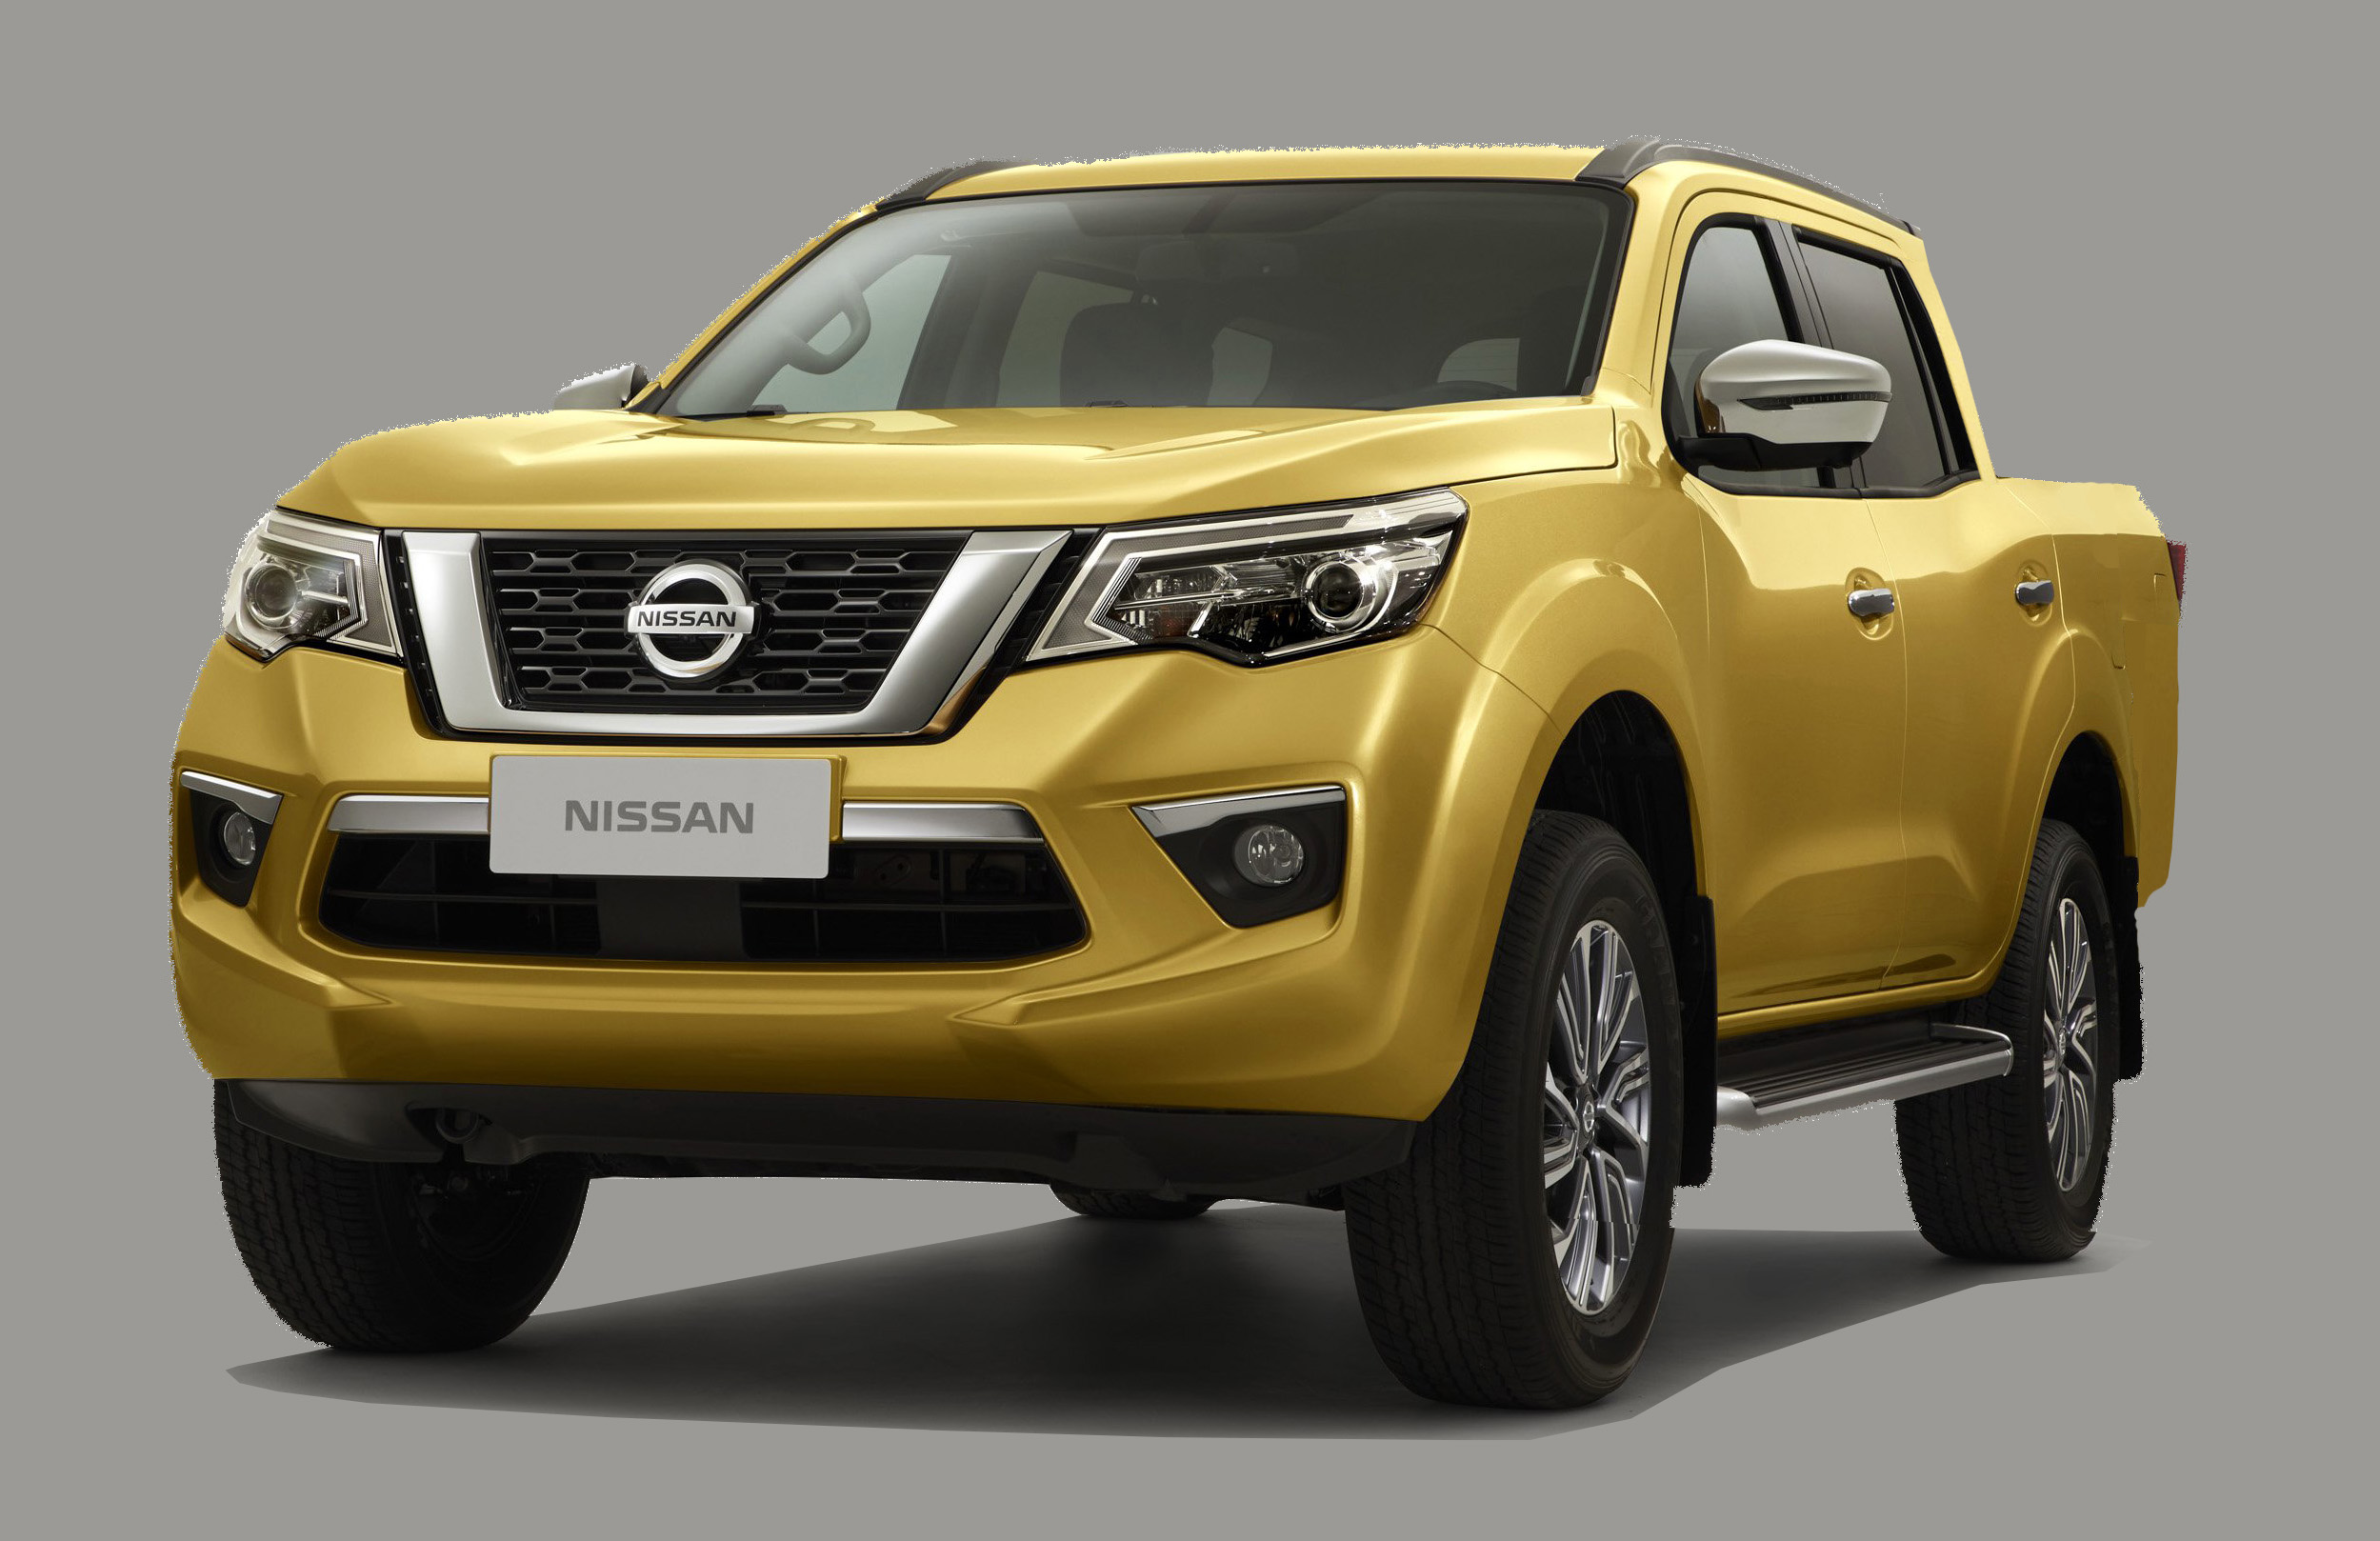 16 Concept of 2019 Nissan Navara Price for 2019 Nissan Navara